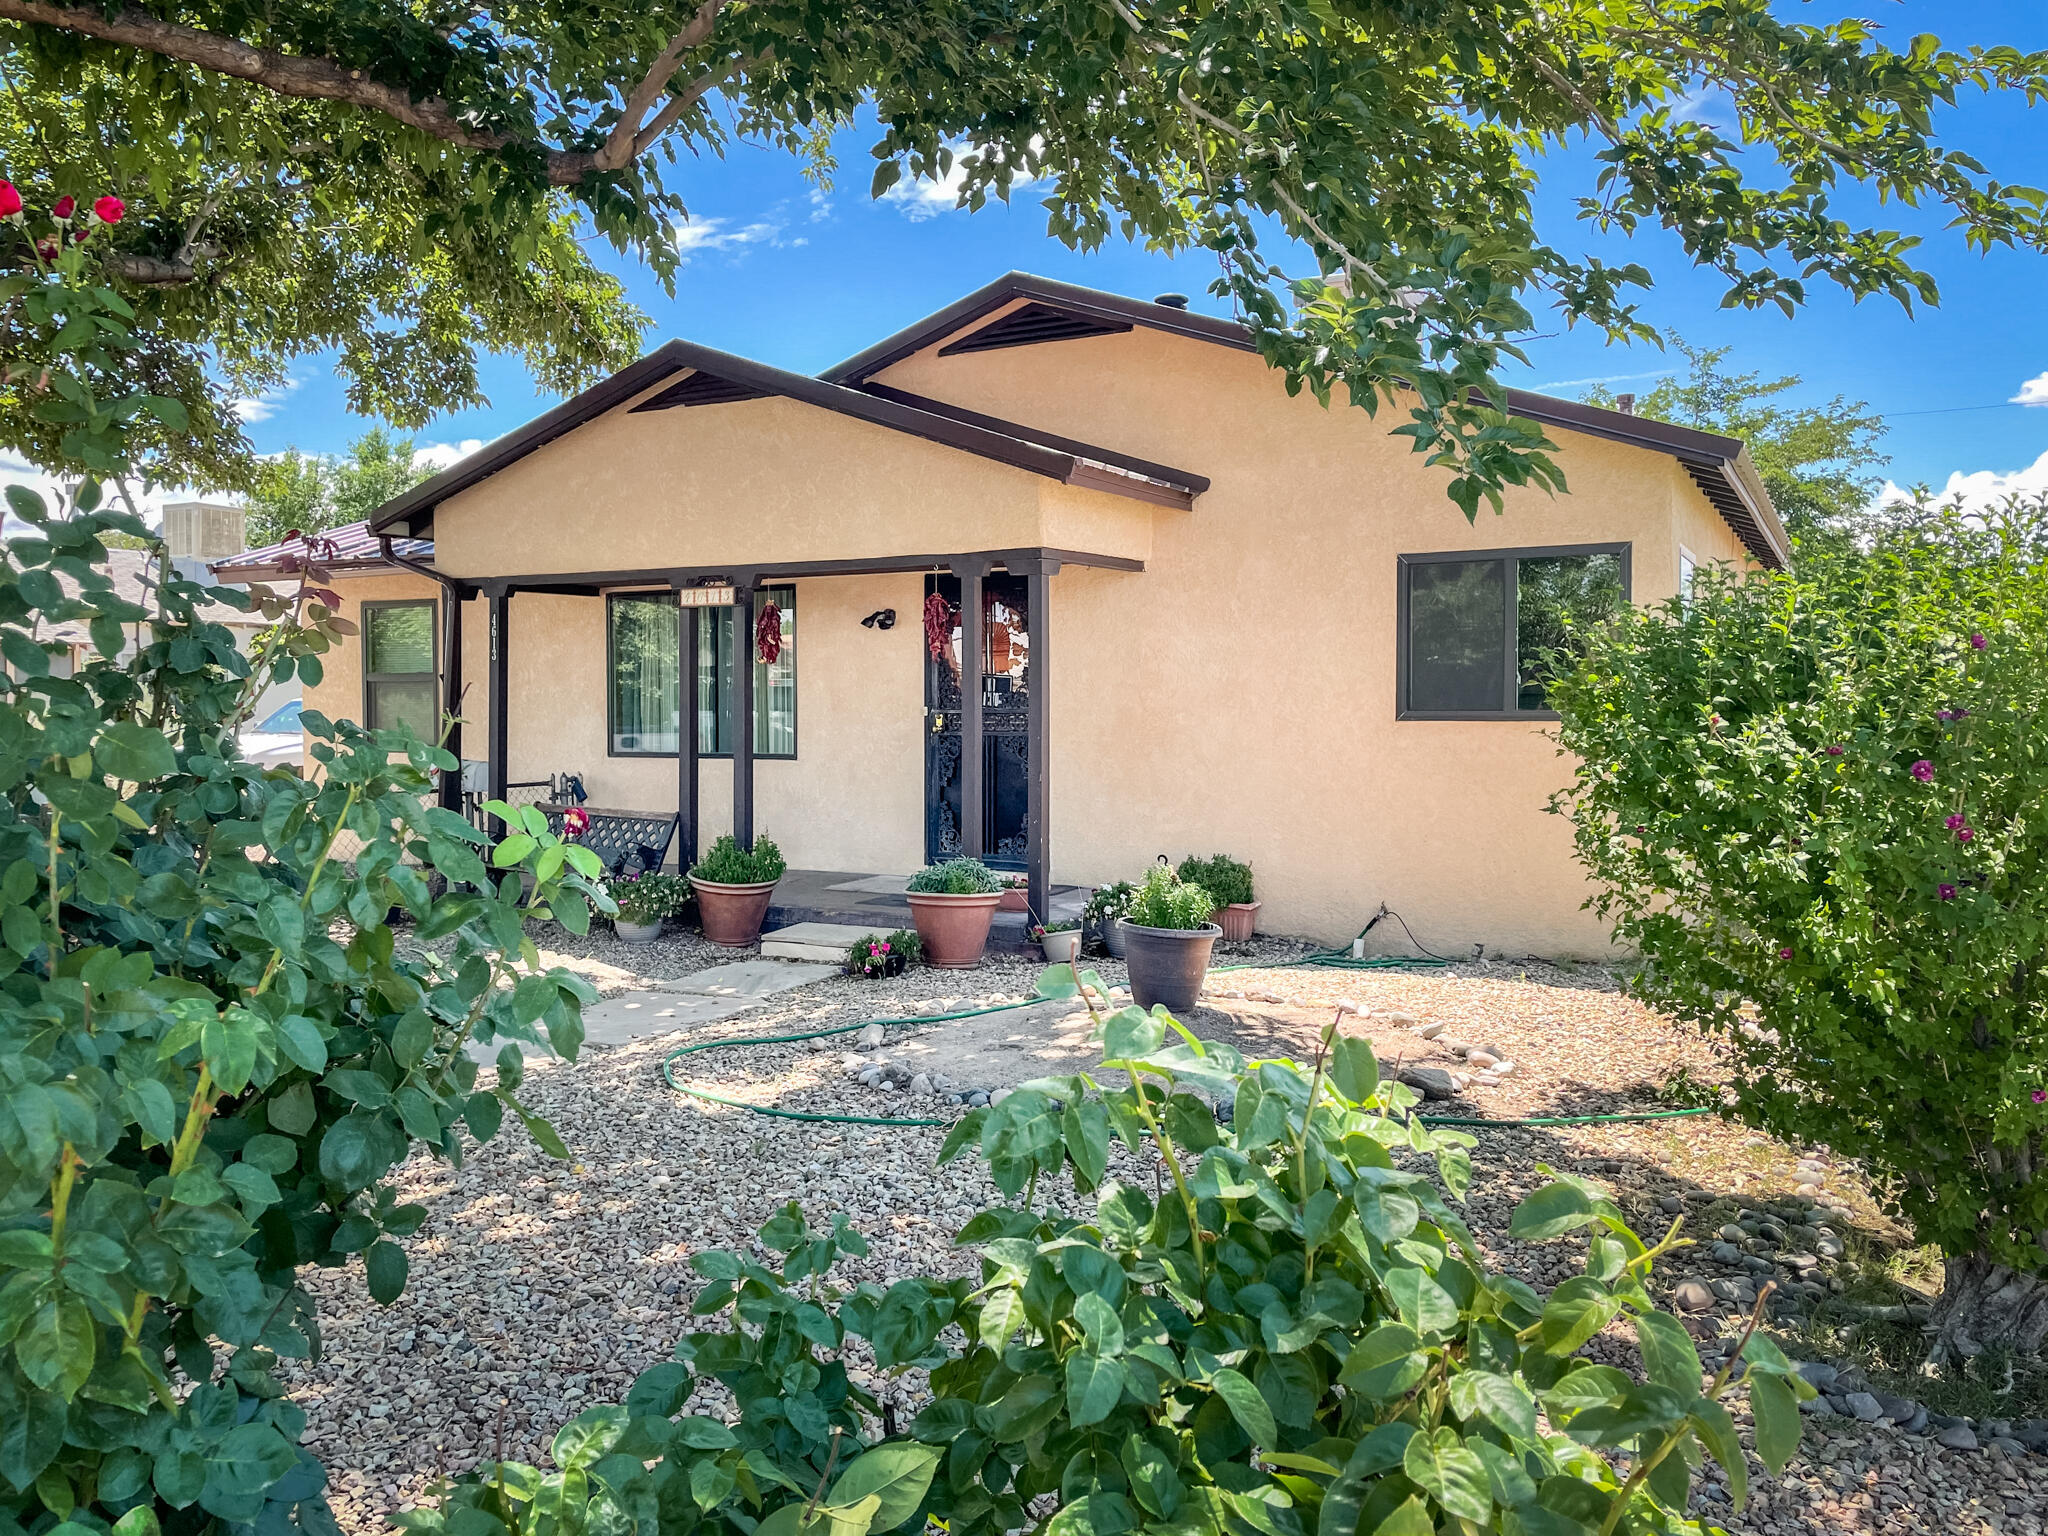 Lovely North Valley gem. A beautiful custom made door greets you as you enter. New pro-panel roof in 2019, furnace and water heater about 8 years old, and evaporative cooler about 4 years old. HUGE living area with bay window and view of the shaded front yard. Newer laminate flooring.   2 living areas for entertaining. Large kitchen with tons of storage, stainless steel appliances and granite countertops. Great sized backyard with shade tree, apple trees, new xeriscaping and shed. Great 10x12 covered wooden deck. Great location, close to shopping and easy access to I-25. Won't last long!  Come get your piece of the valley!